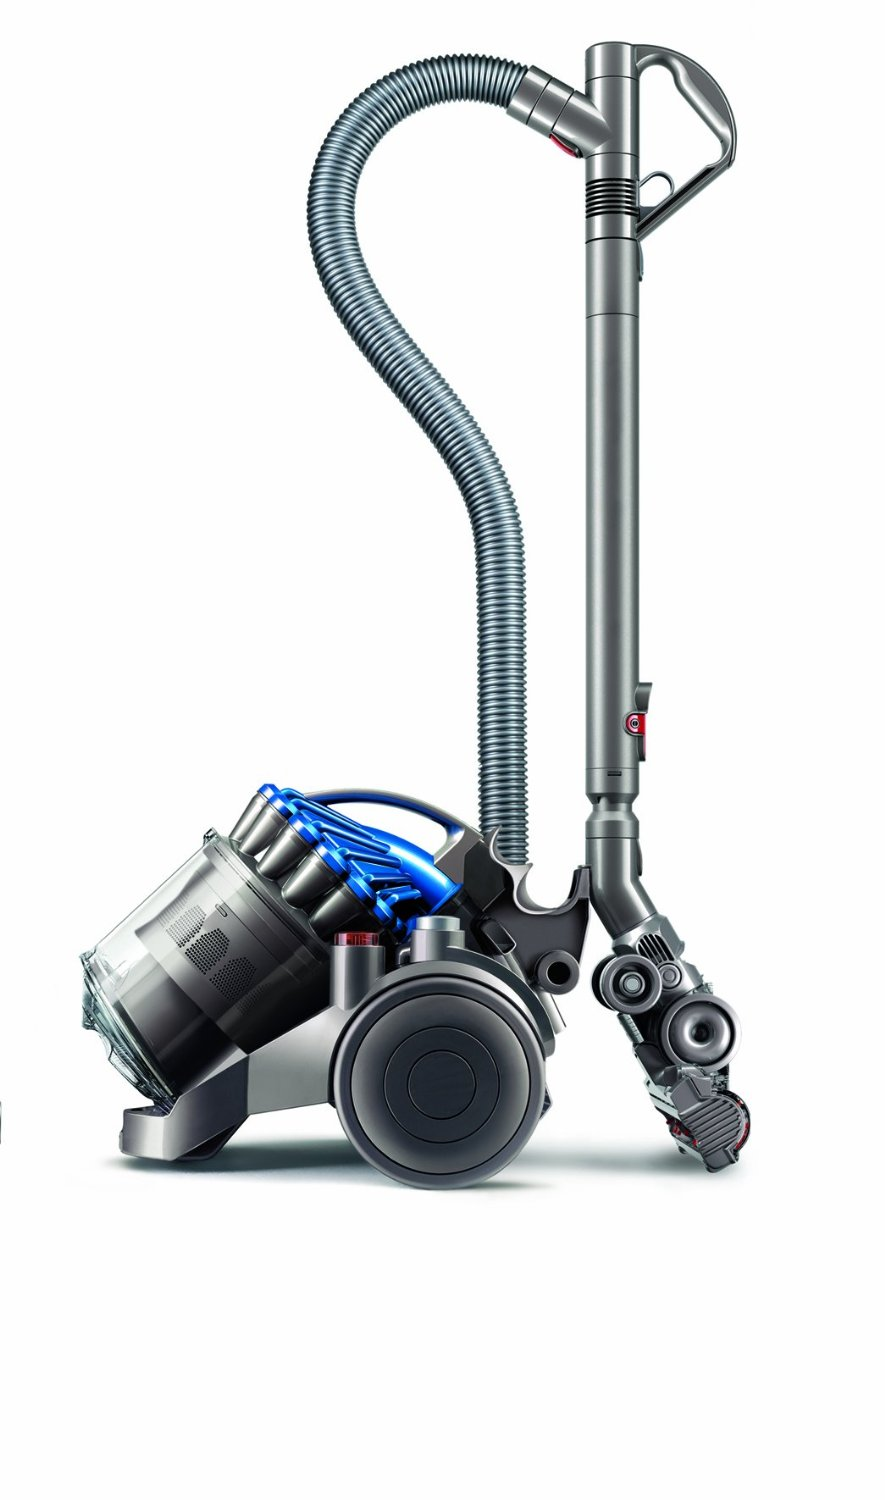 Cyber Monday | Up To $200 Off Dyson Products